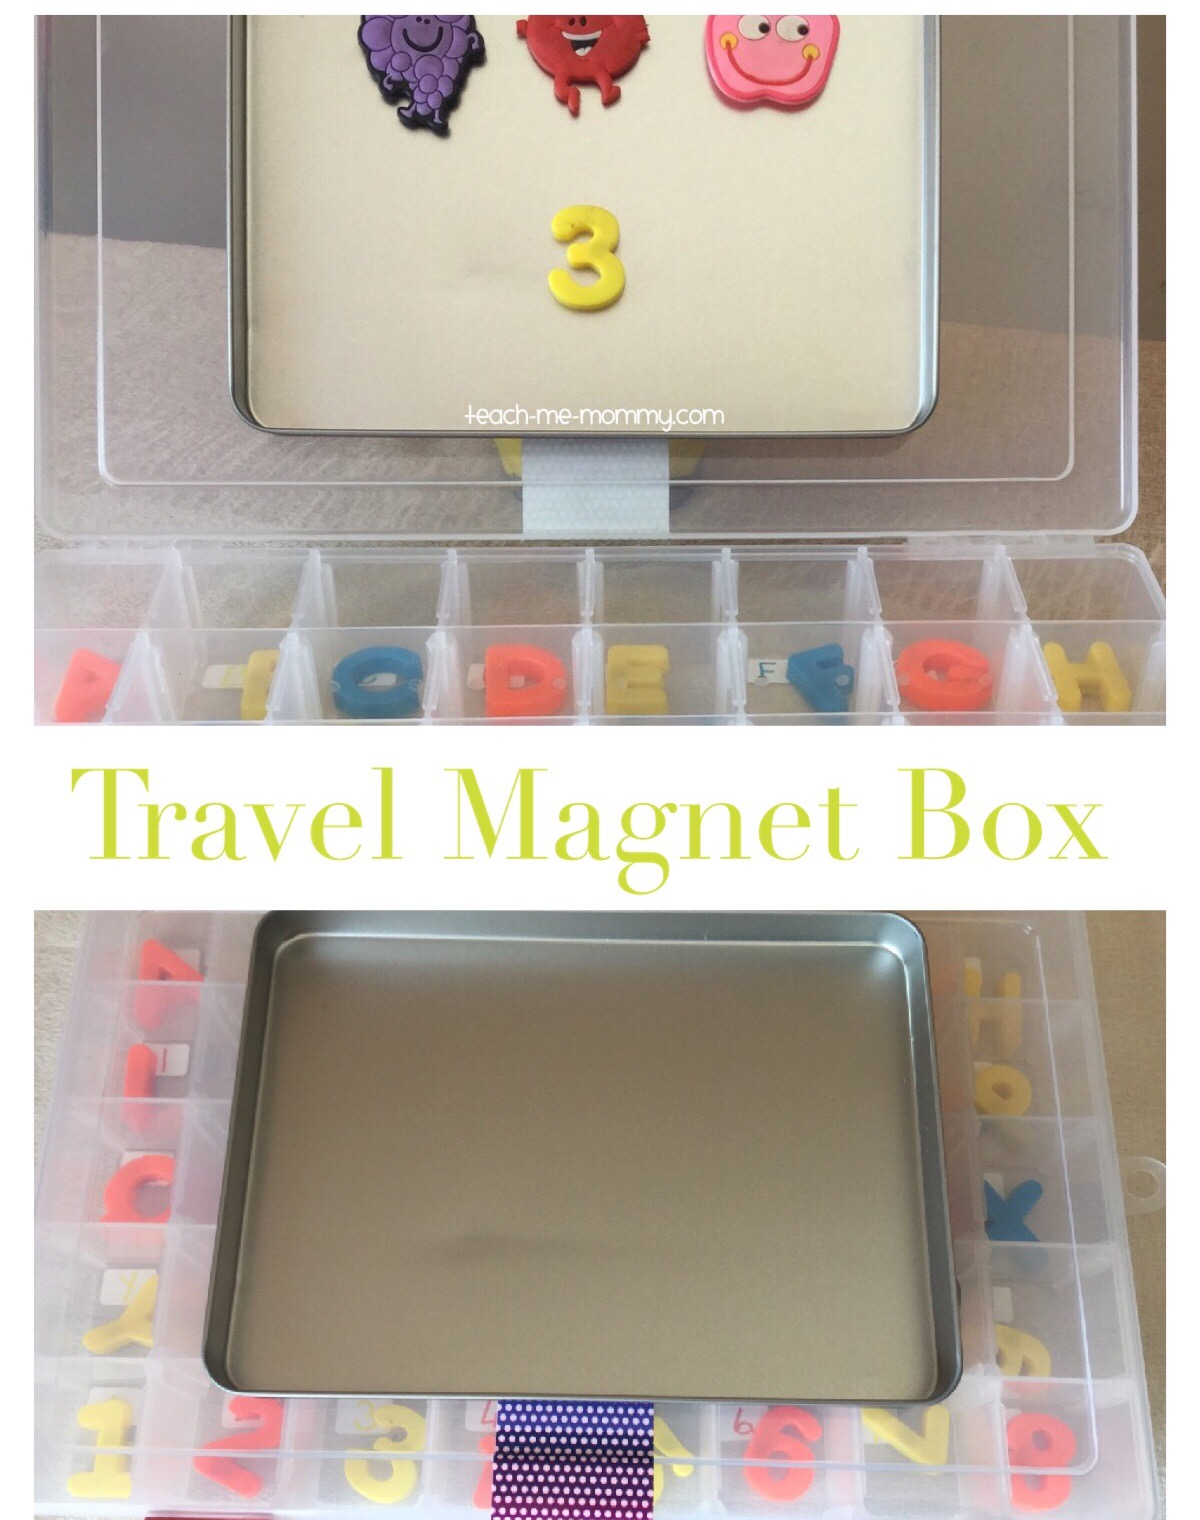 travel magnet box